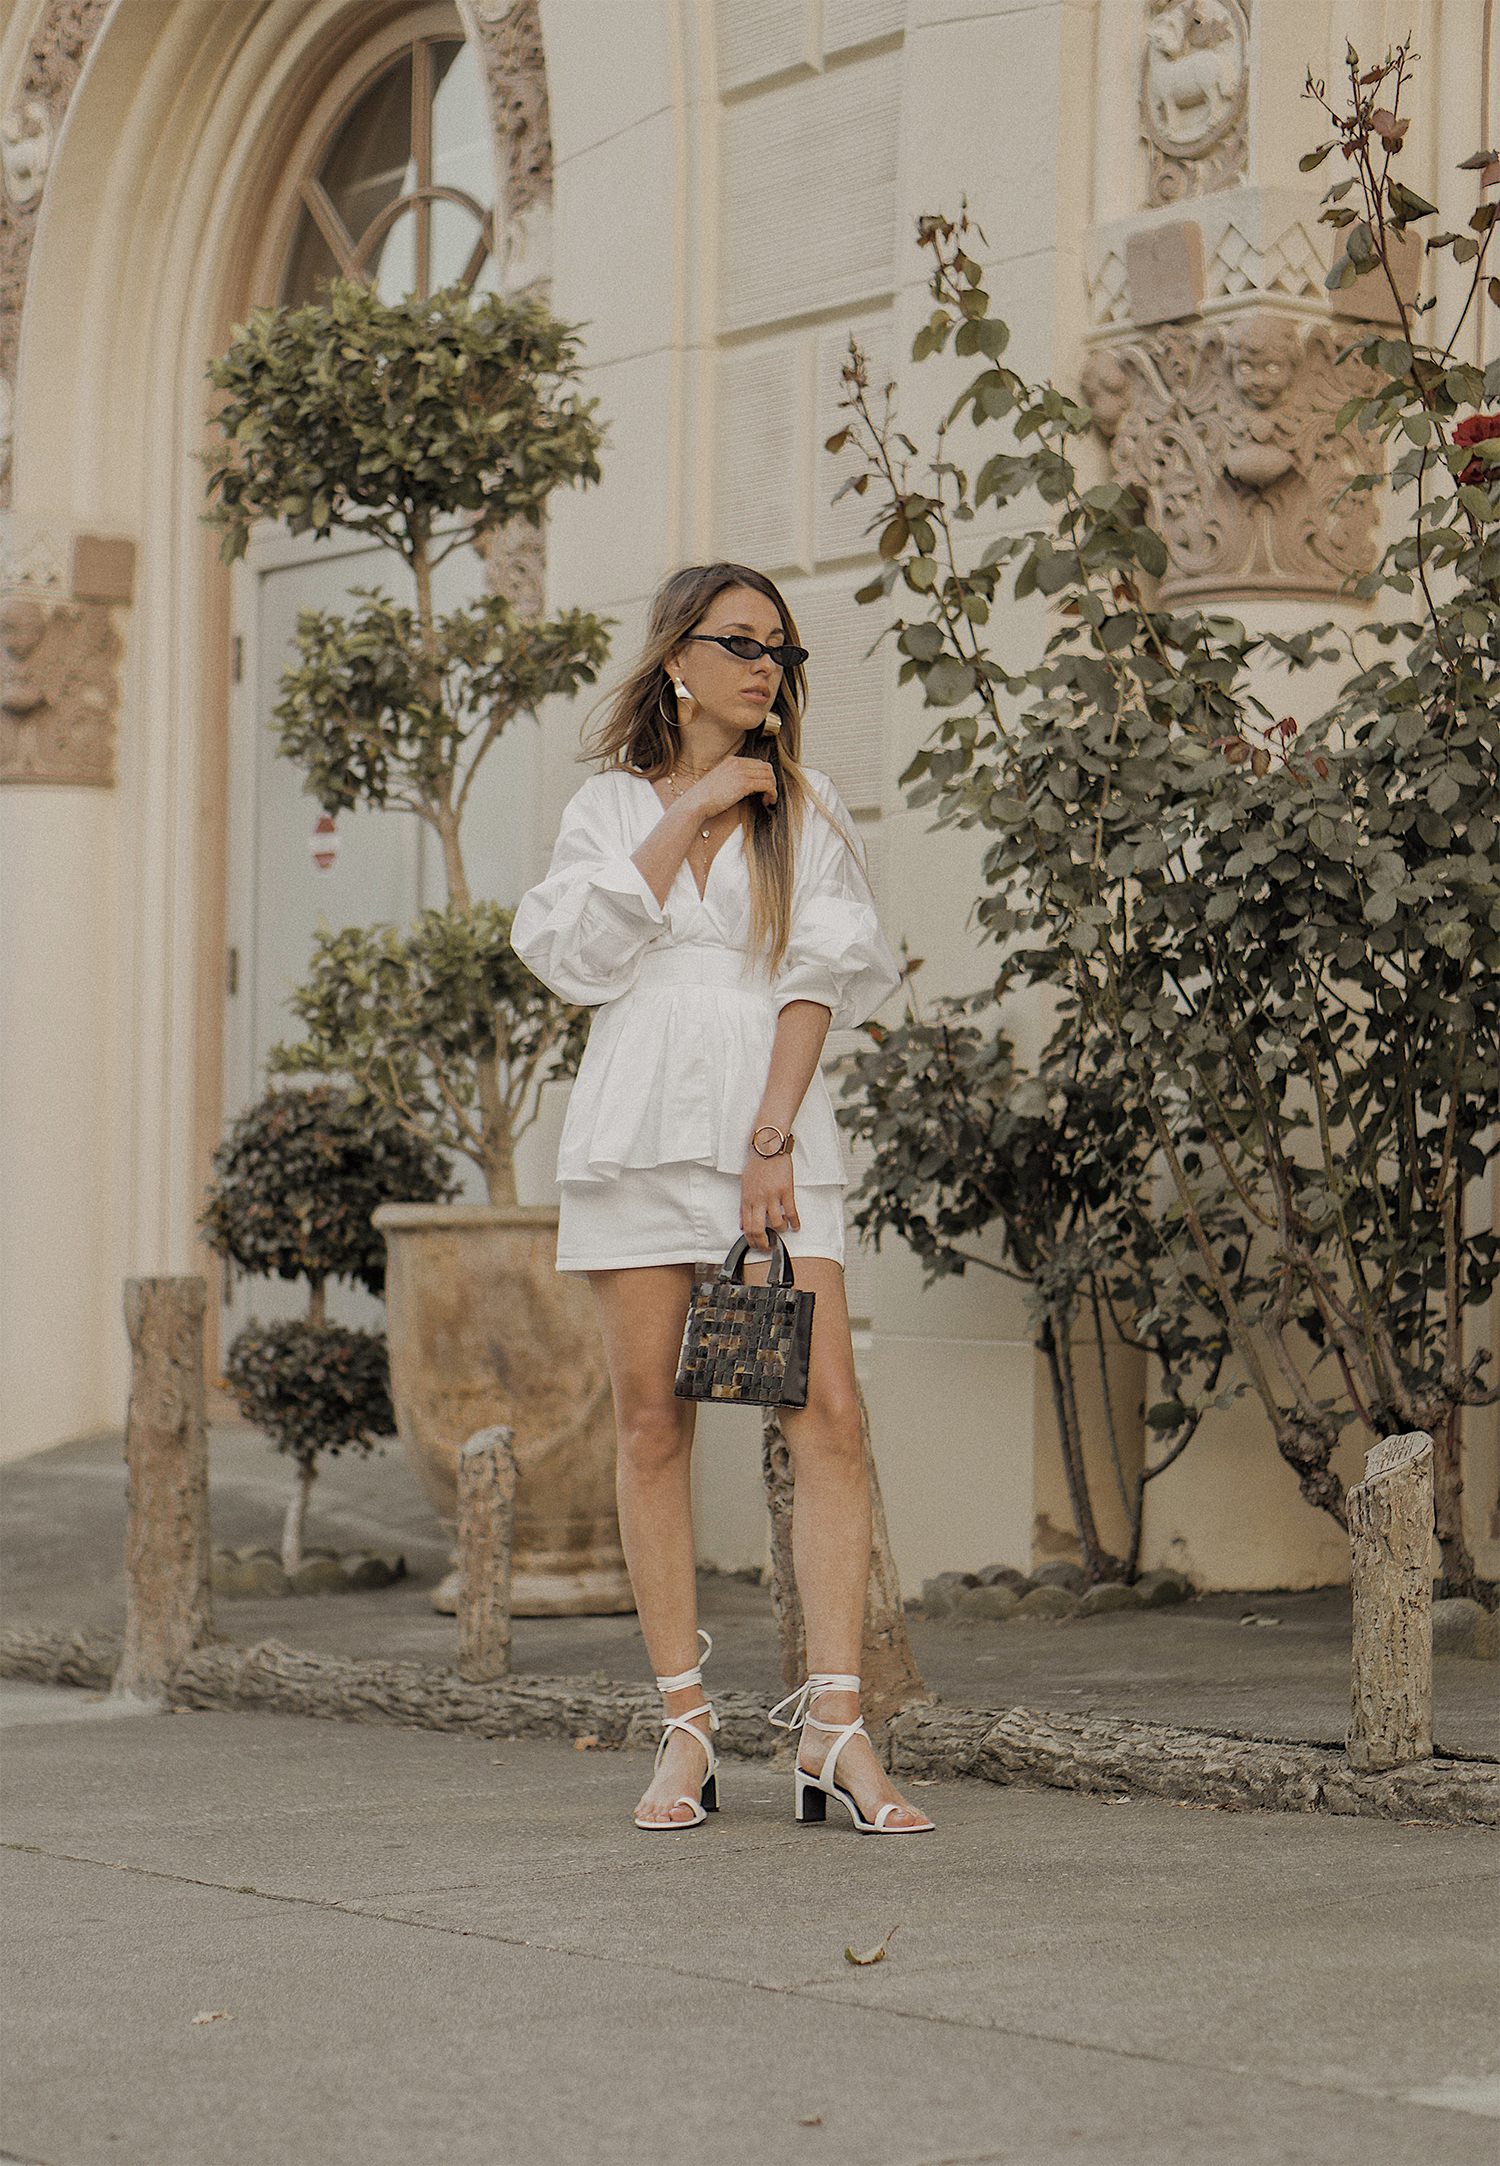 white_outfit_look_ideas_street_style_total_white_Céline_inspired_Ring_Toe_Lace_Up_Sandals_summer_san_francisco_fashion_blogger_bay_area_the_white_ocean_lena_juice_08